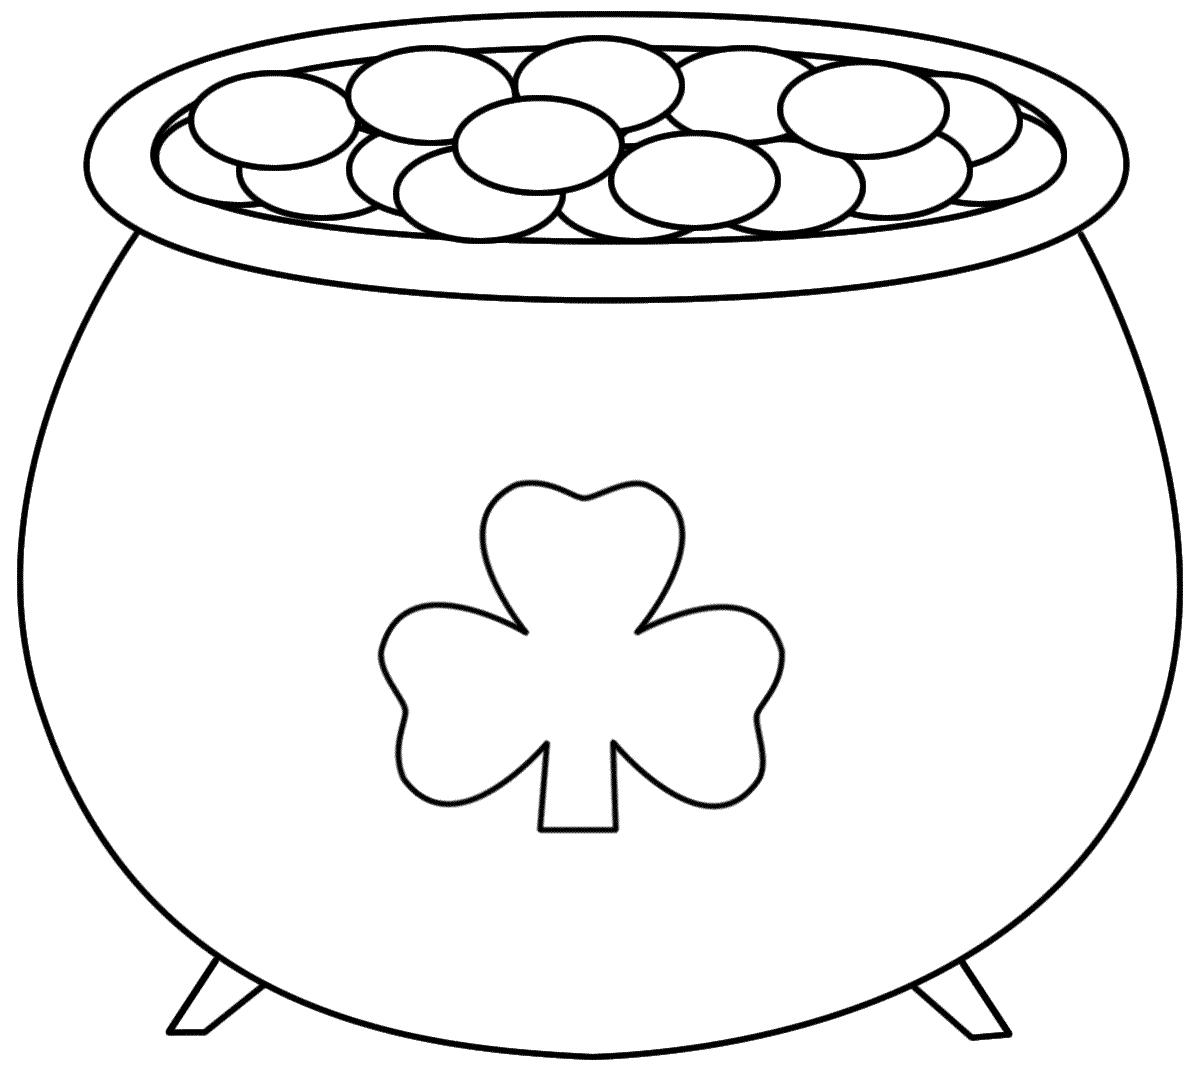 Pot+Of+Gold+Printable | Pot Of Gold - Coloring Pages | Saint - Pot Of Gold Template Free Printable